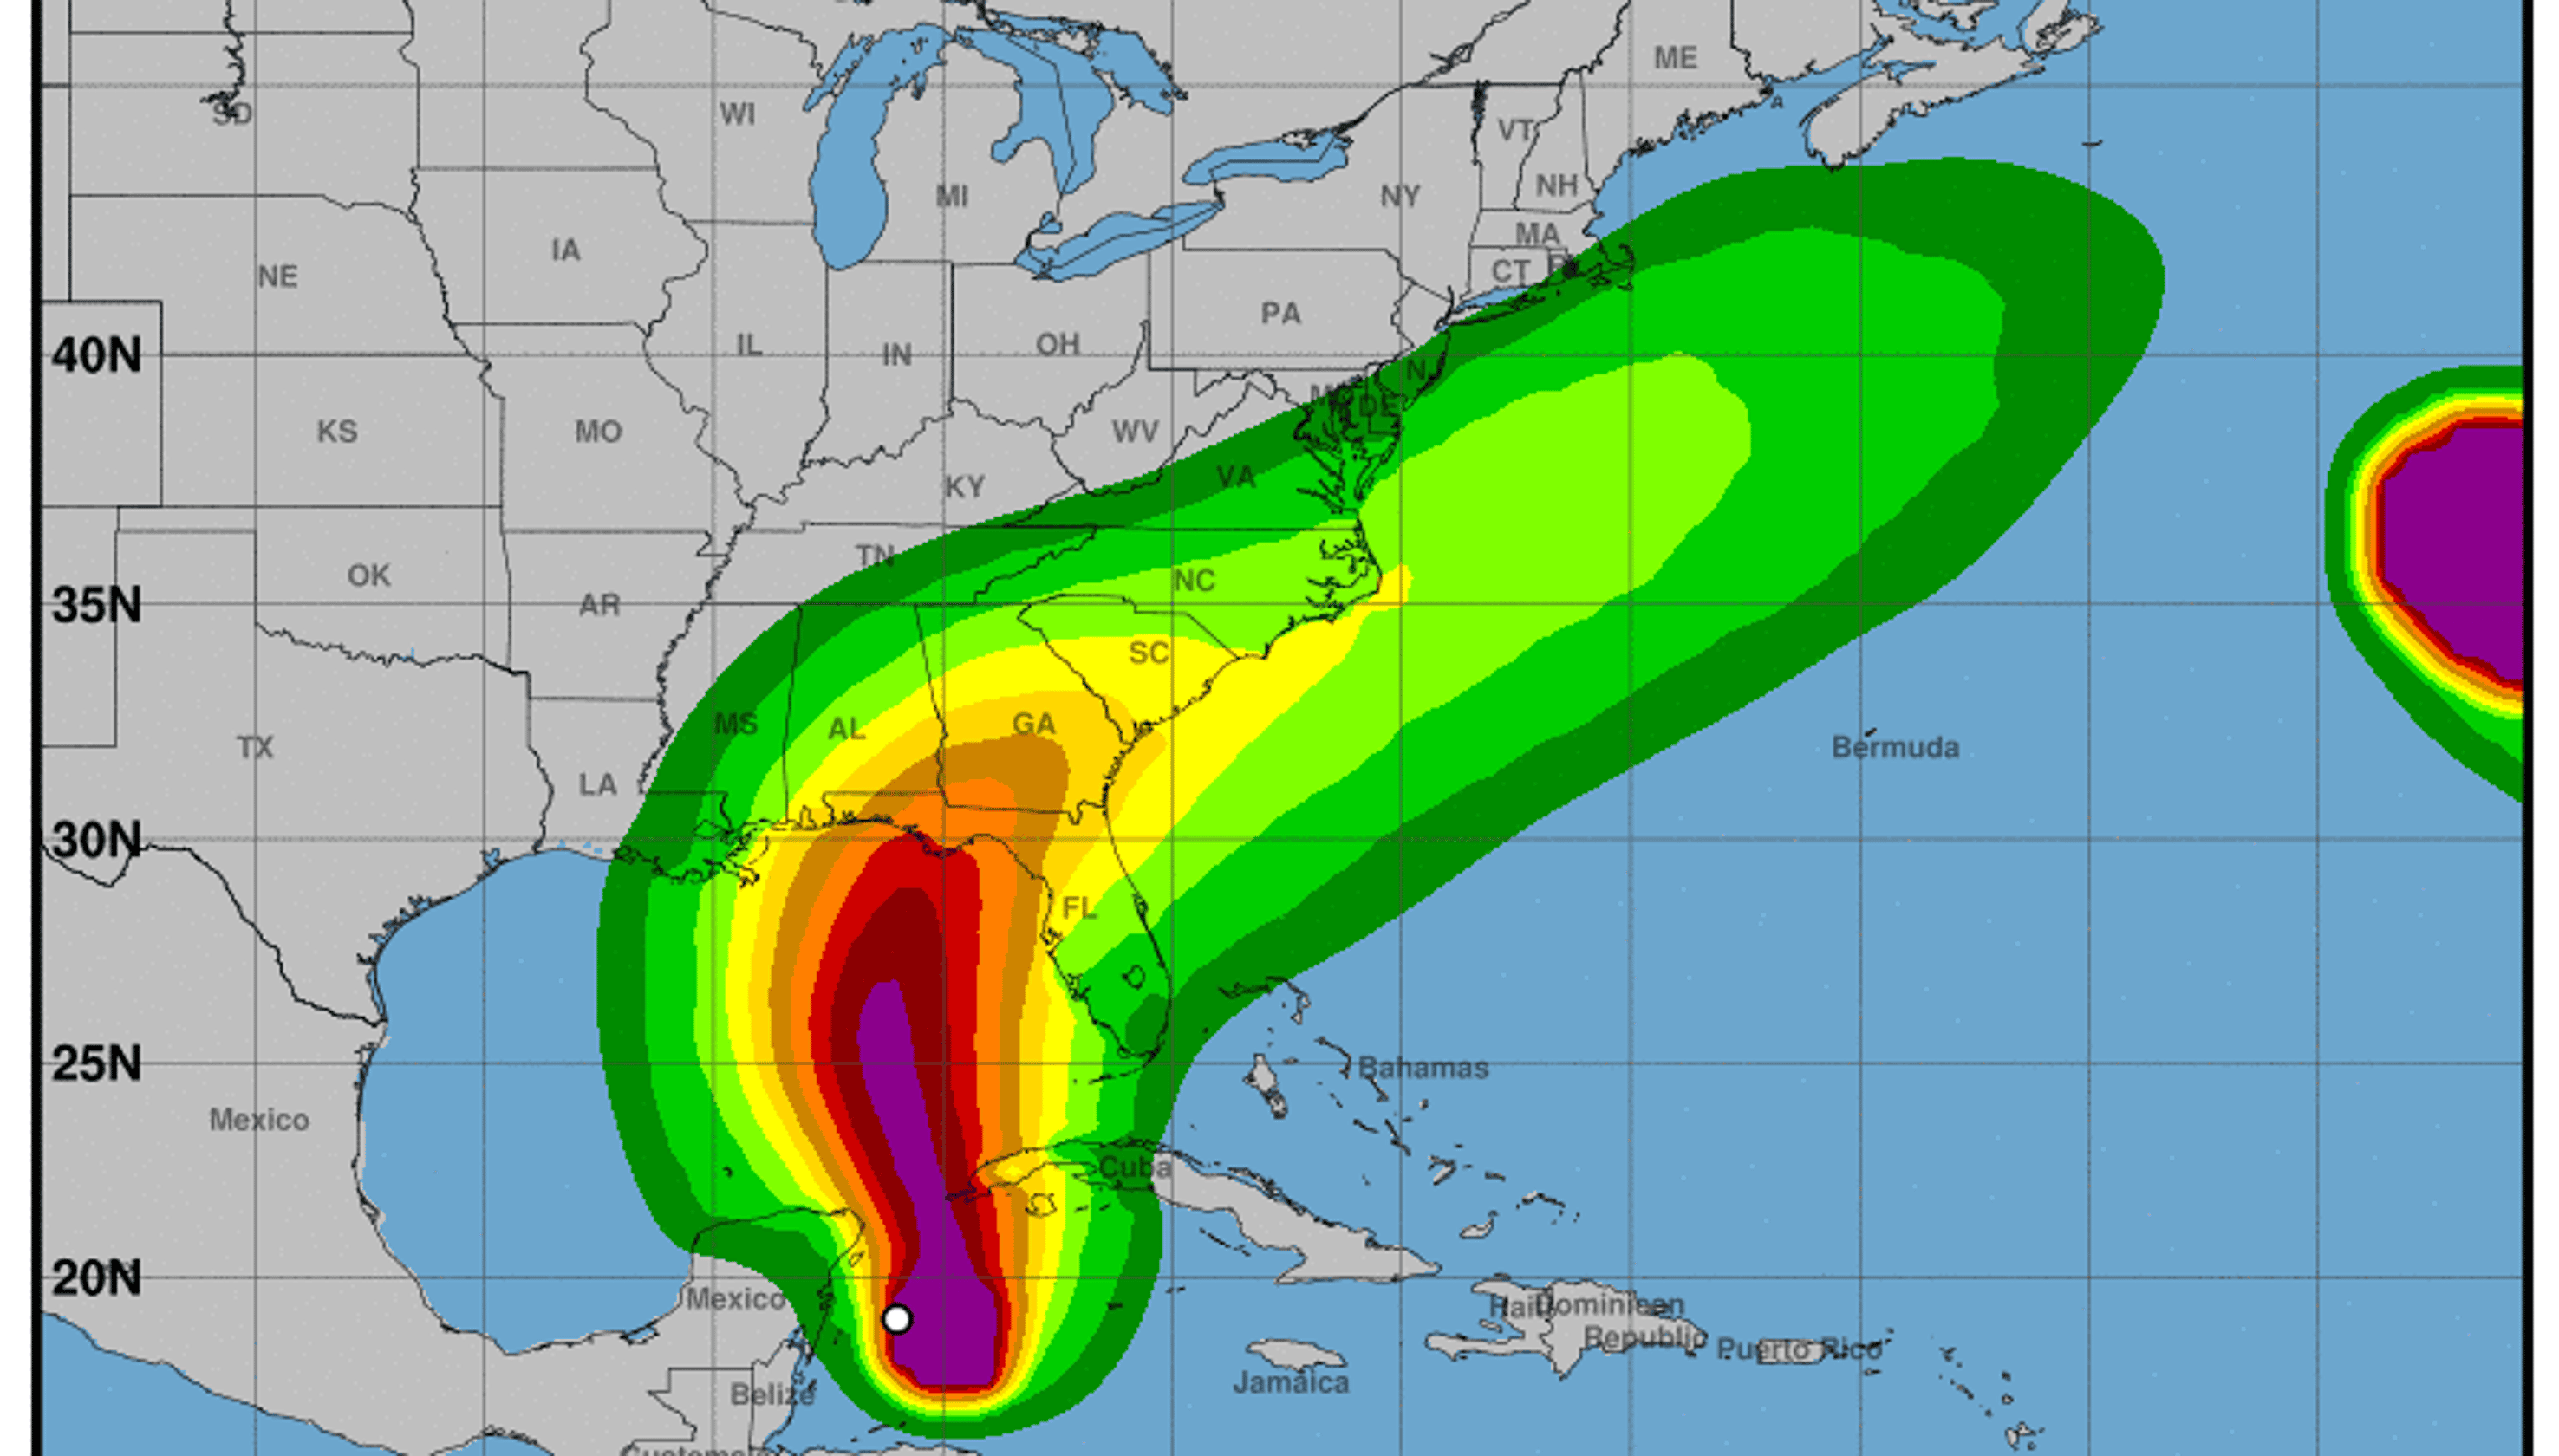 Tropical Storm Michael Stronger Could Impact Florida As A Hurricane